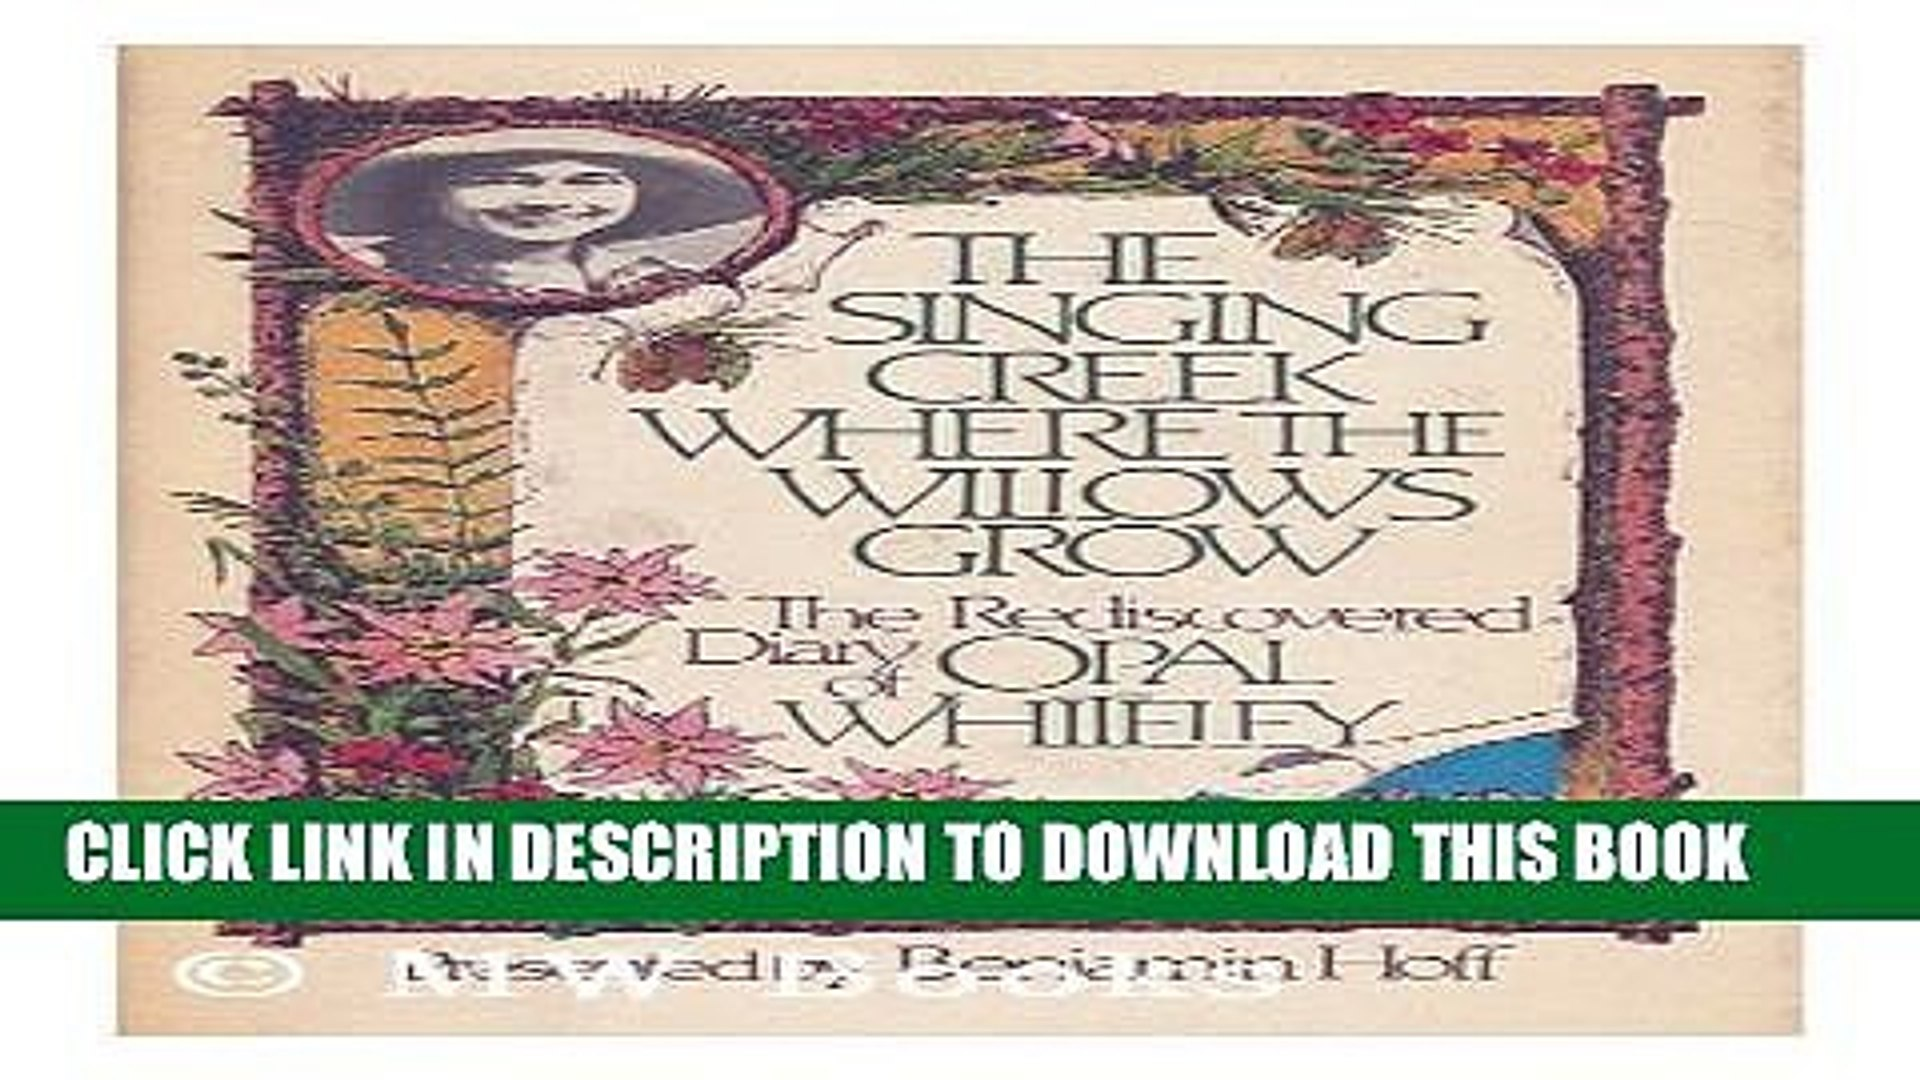 [PDF] The Singing Creek Where the Willows Grow: The Rediscovered Diary of Opal Whiteley Full Online